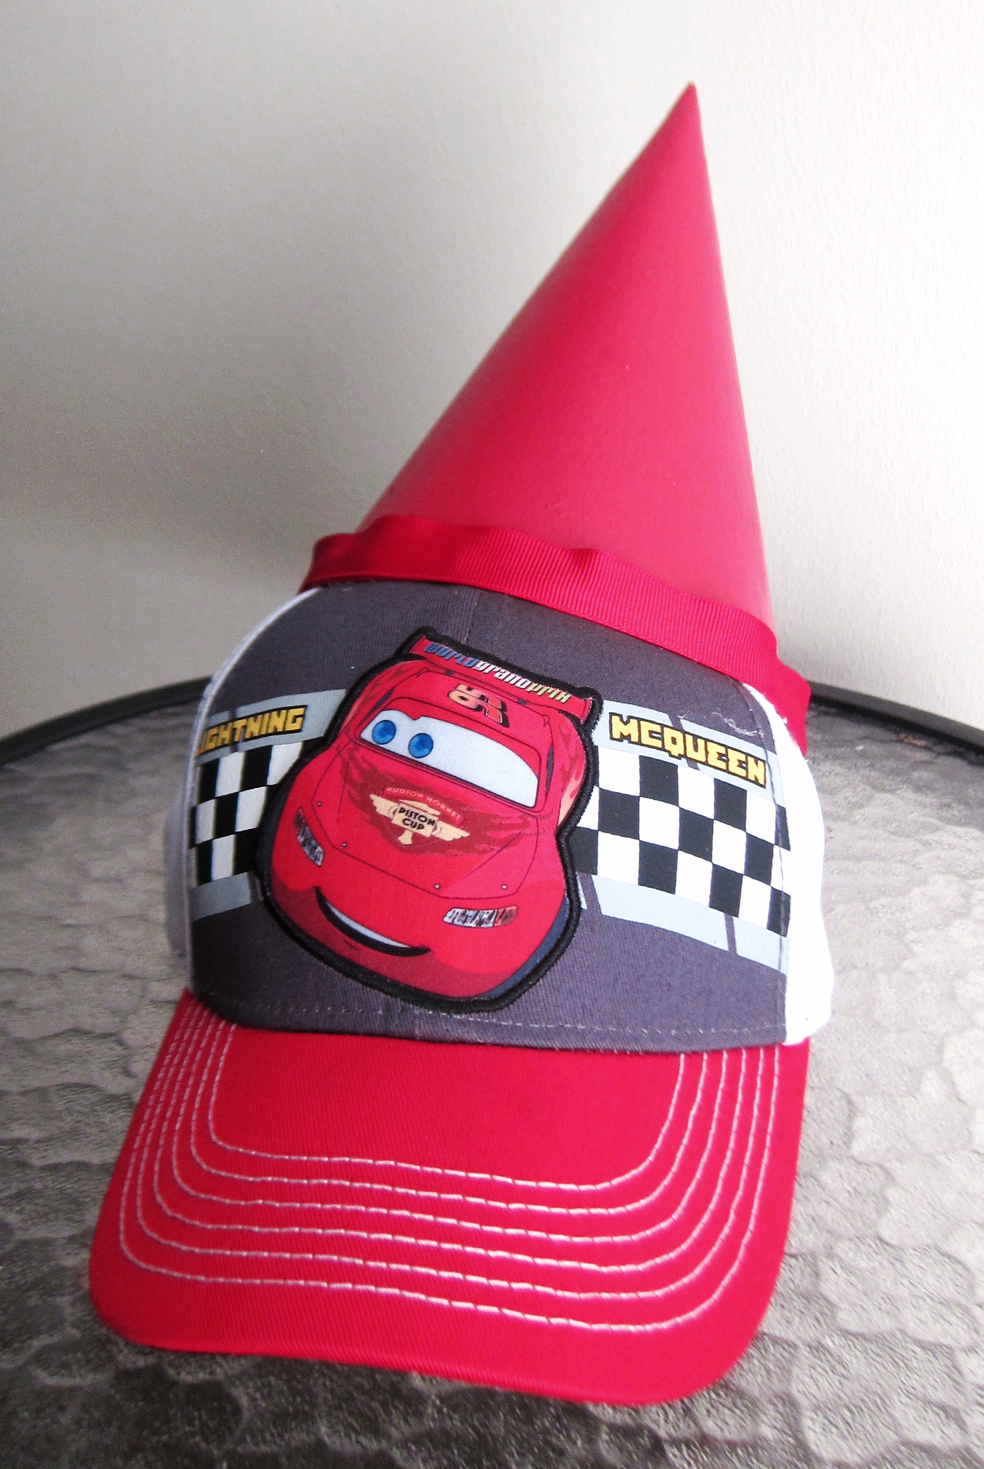 RACE CAR RED: Lightening McQueen hat from the halloween store, red ribbon that I had leftover from another project.